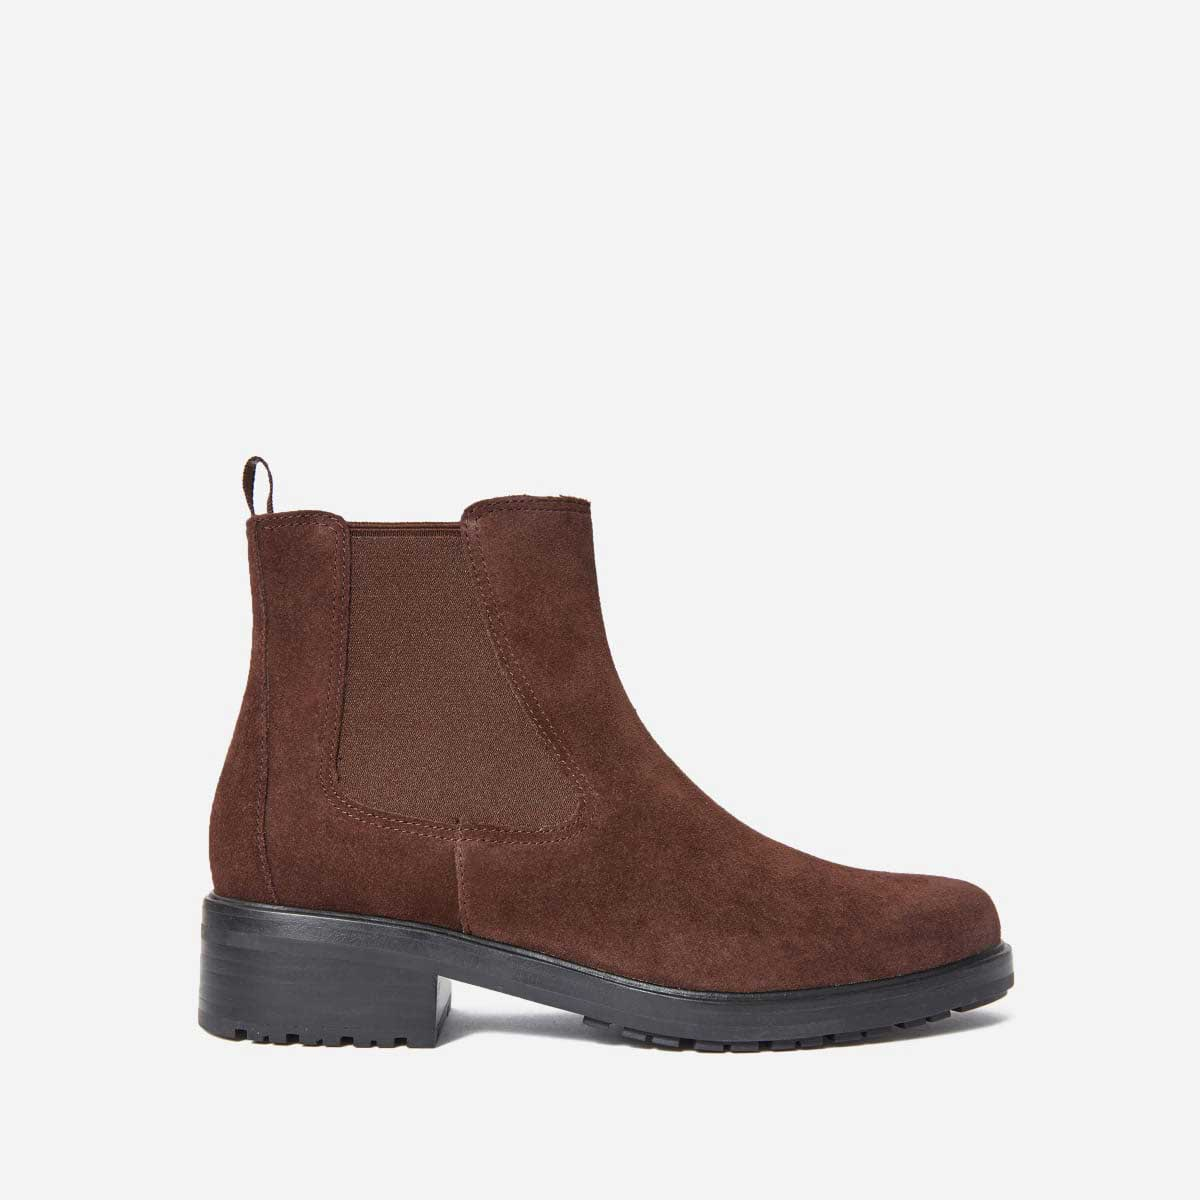 Best-Chelsea-Boots-Everlane